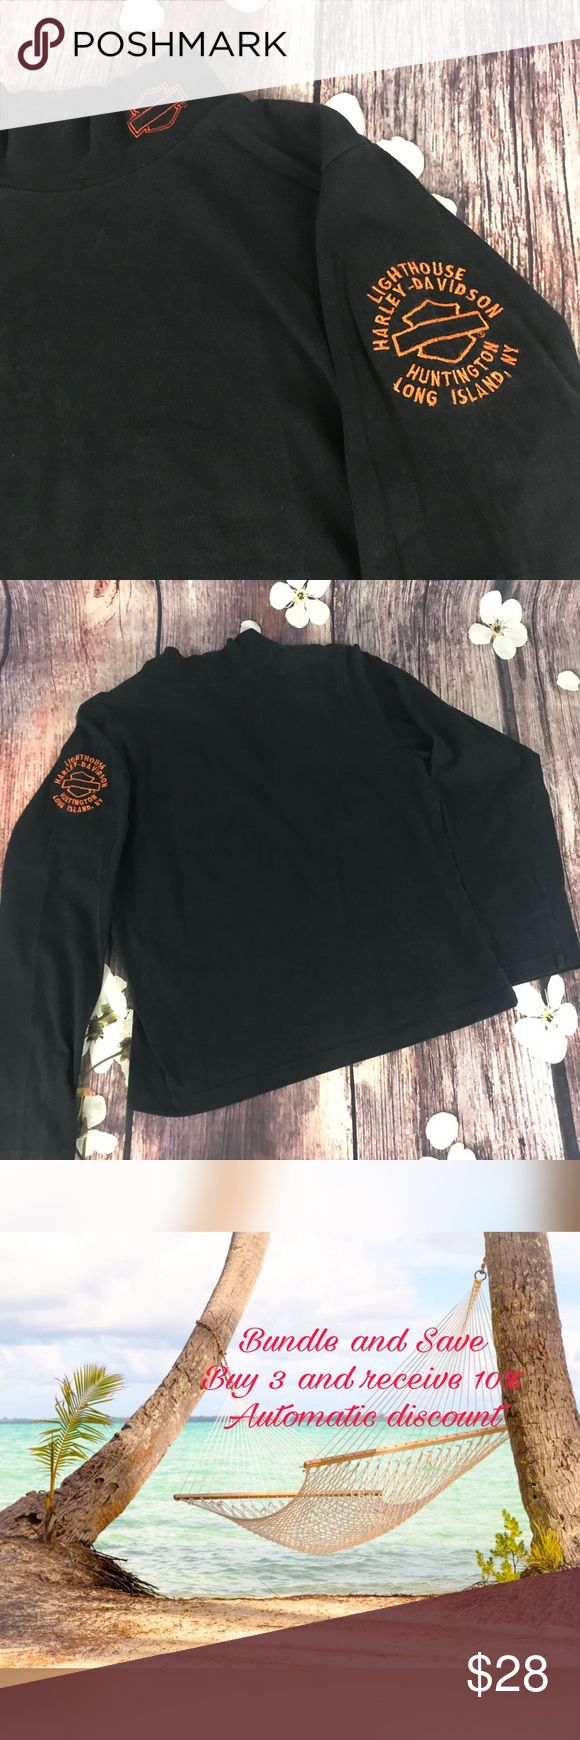 """Harley Davidson Ladies Top Black long sleeve Harley Davidson top with a high neck with a small logo embroidered on it and a dealership logo embroidered on the sleeve.  This one is from Lighthouse Harley Davidson, Huntington, Long Island, NY.  Material 100% cotton.  Measurements: pit to pit approx 40"""" length approx 21"""".   Size L (check measurements - may run small) Orig $.    Now $ Harley-Davidson Tops Tees - Long Sleeve"""